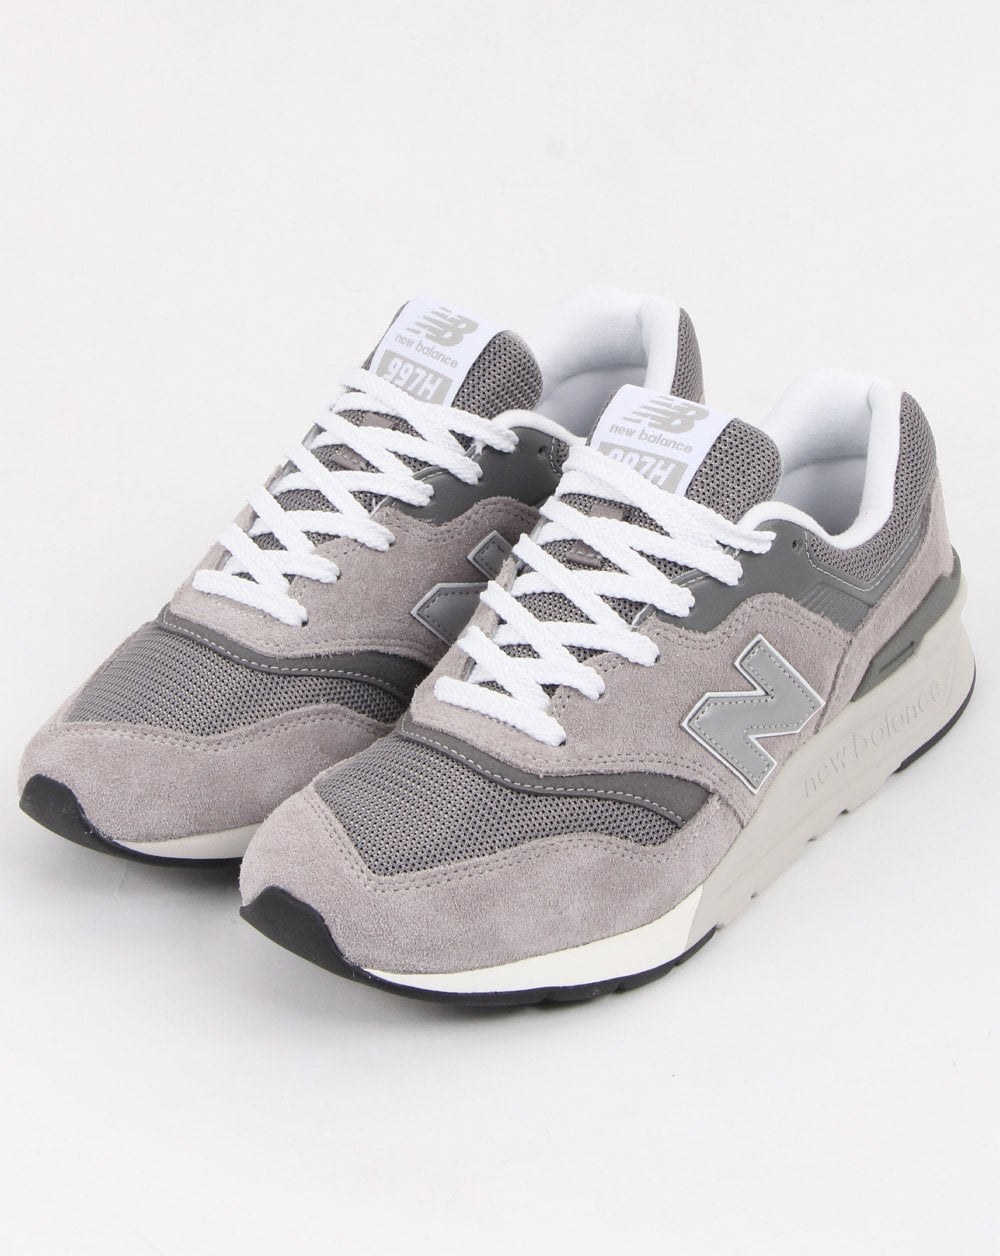 9a5bc5abe6 The Legacy Of The 99x Series & The New Balance 997 Trainer - 80's ...